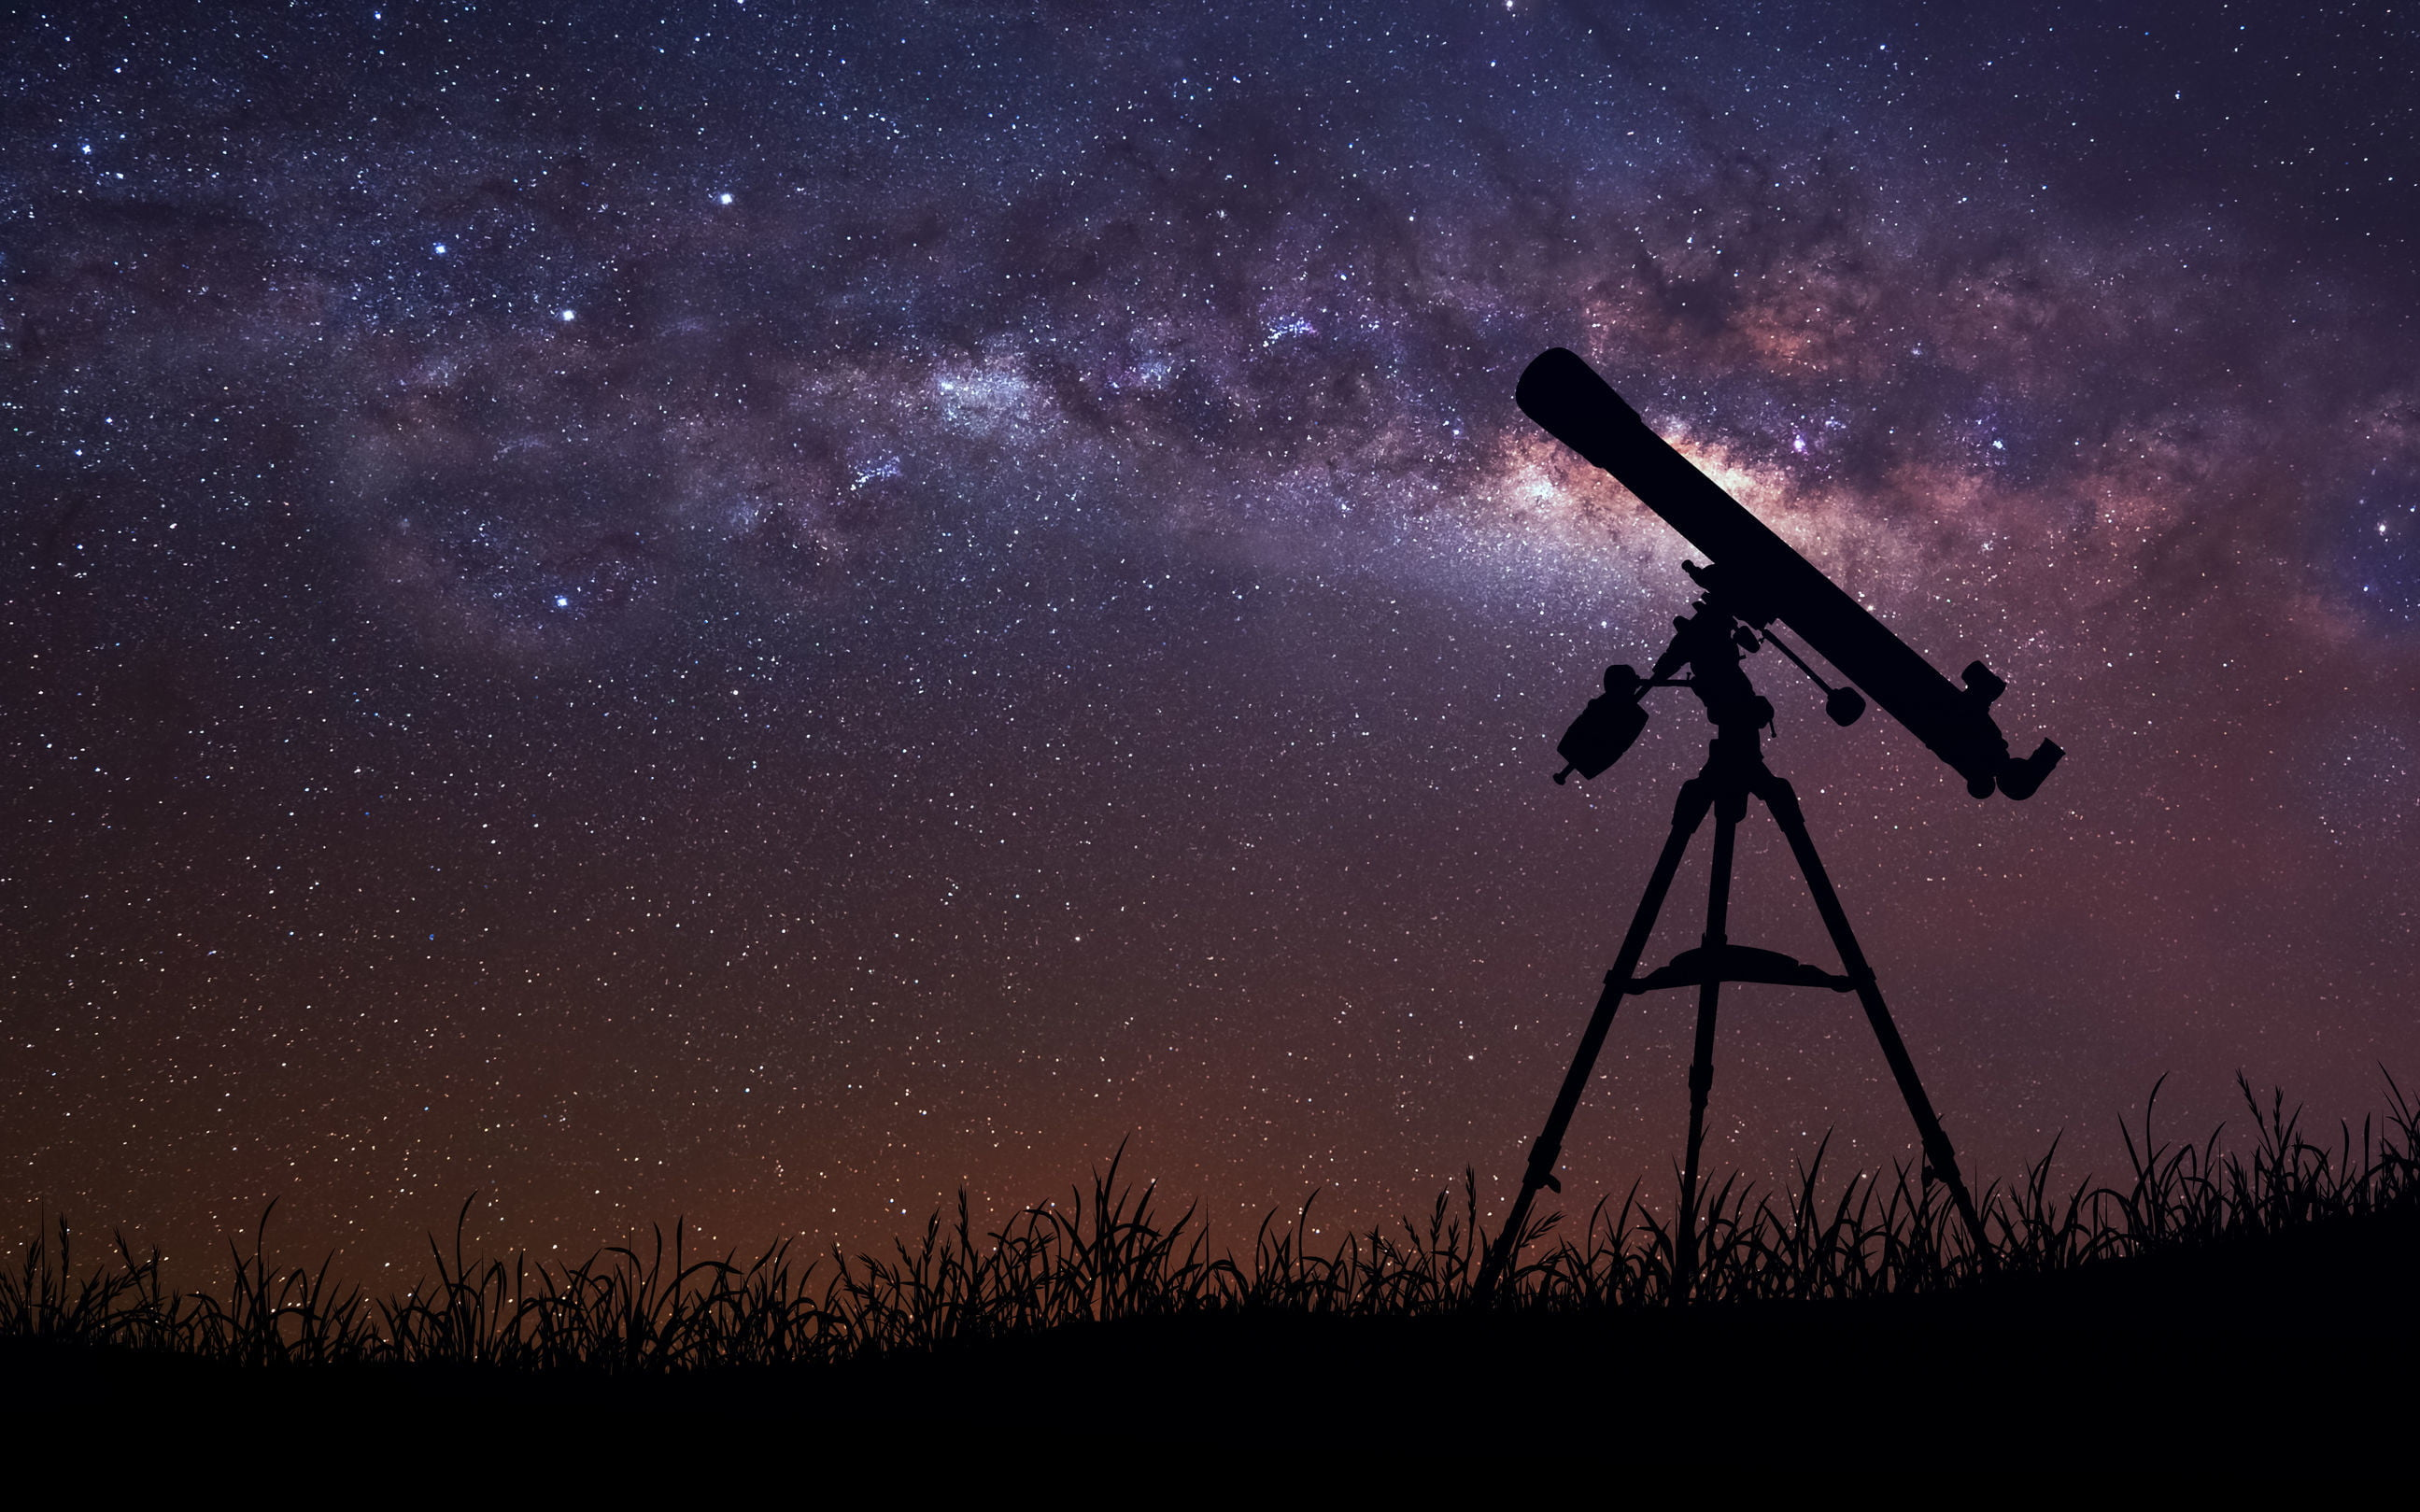 Nobel Prize awarded to physicists who changed our understanding of the cosmos